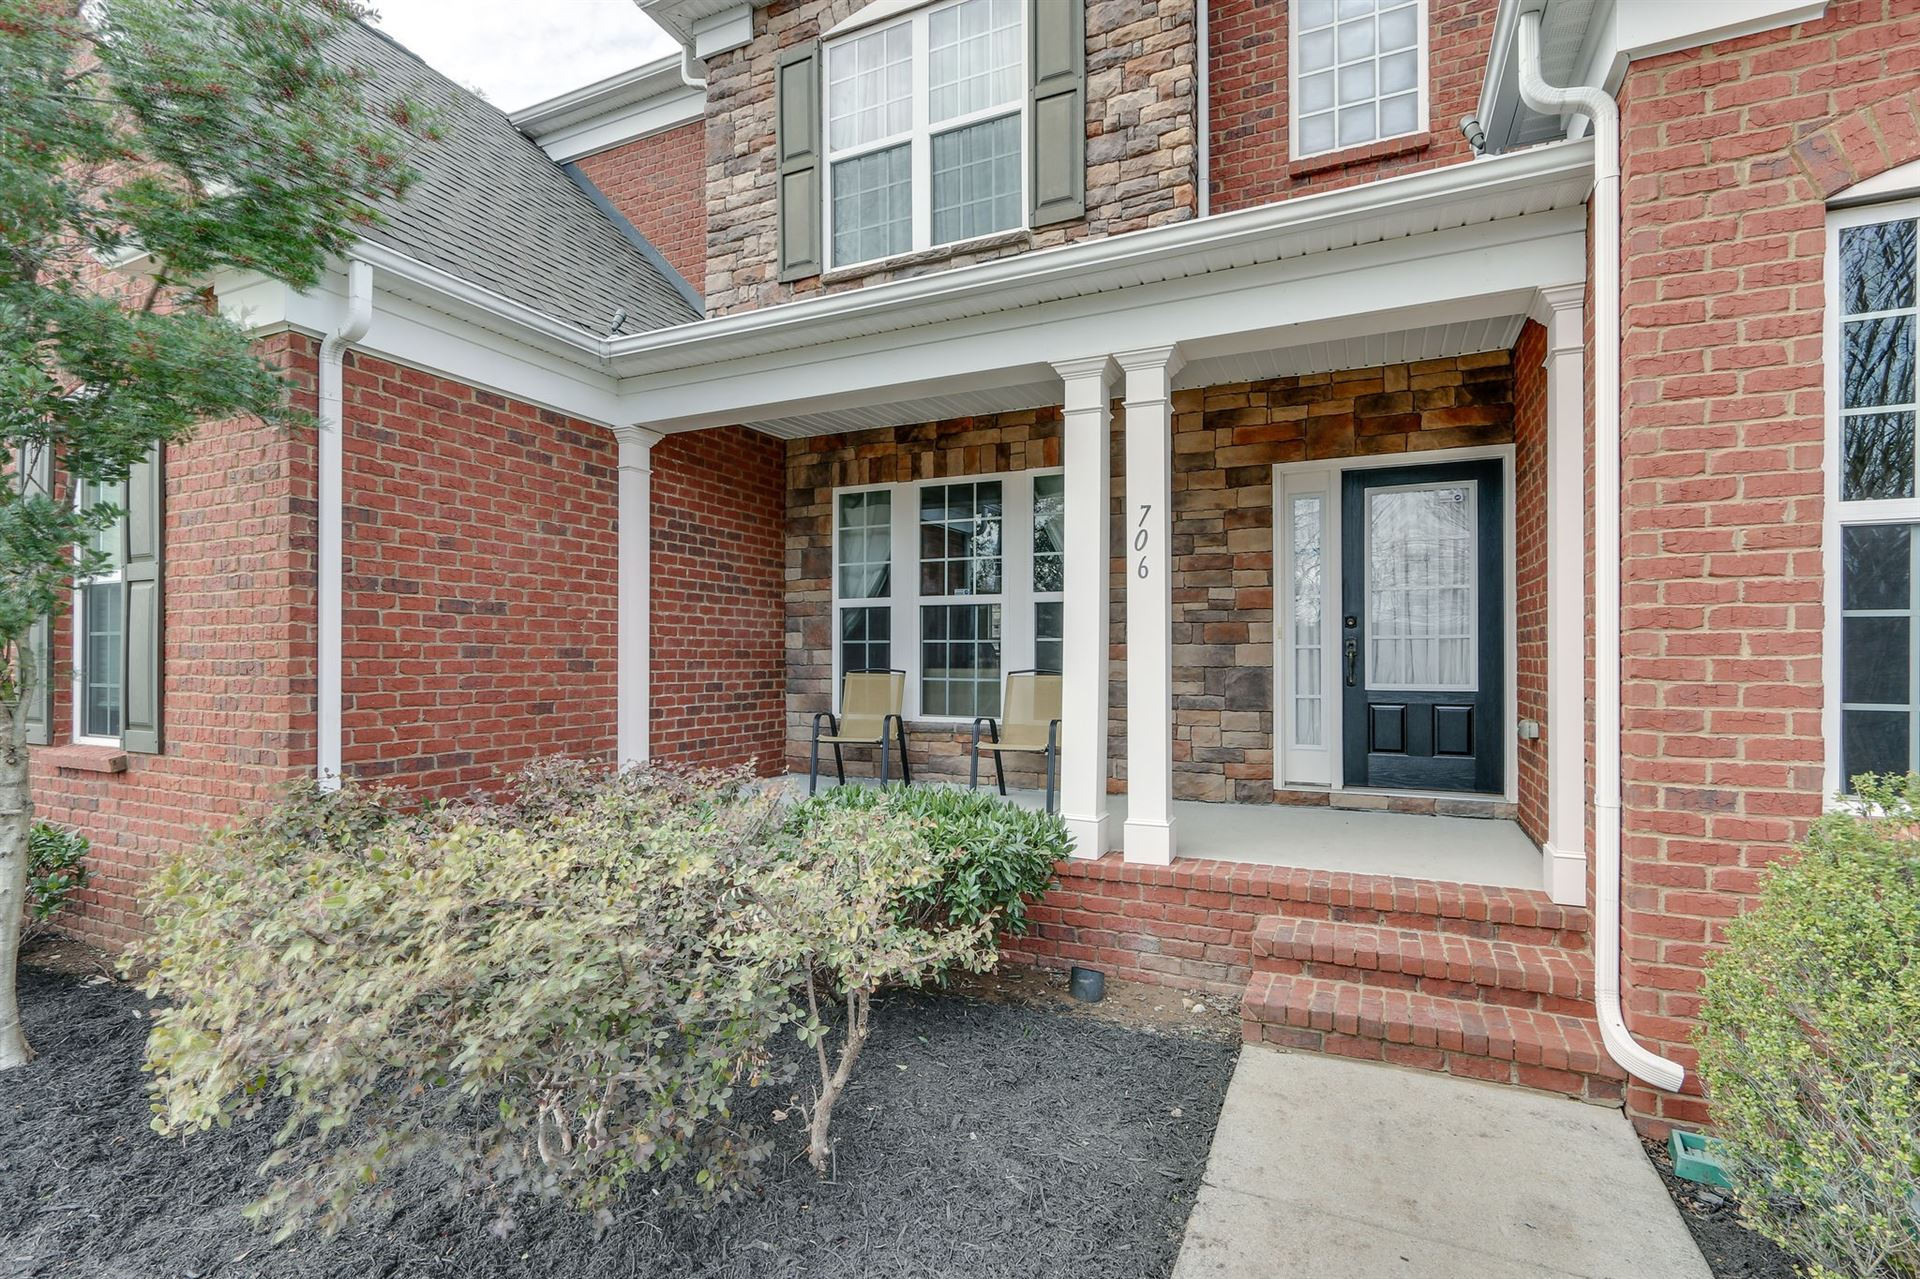 Photo of 706 Pennines Cir, Brentwood, TN 37027 (MLS # 2119537)